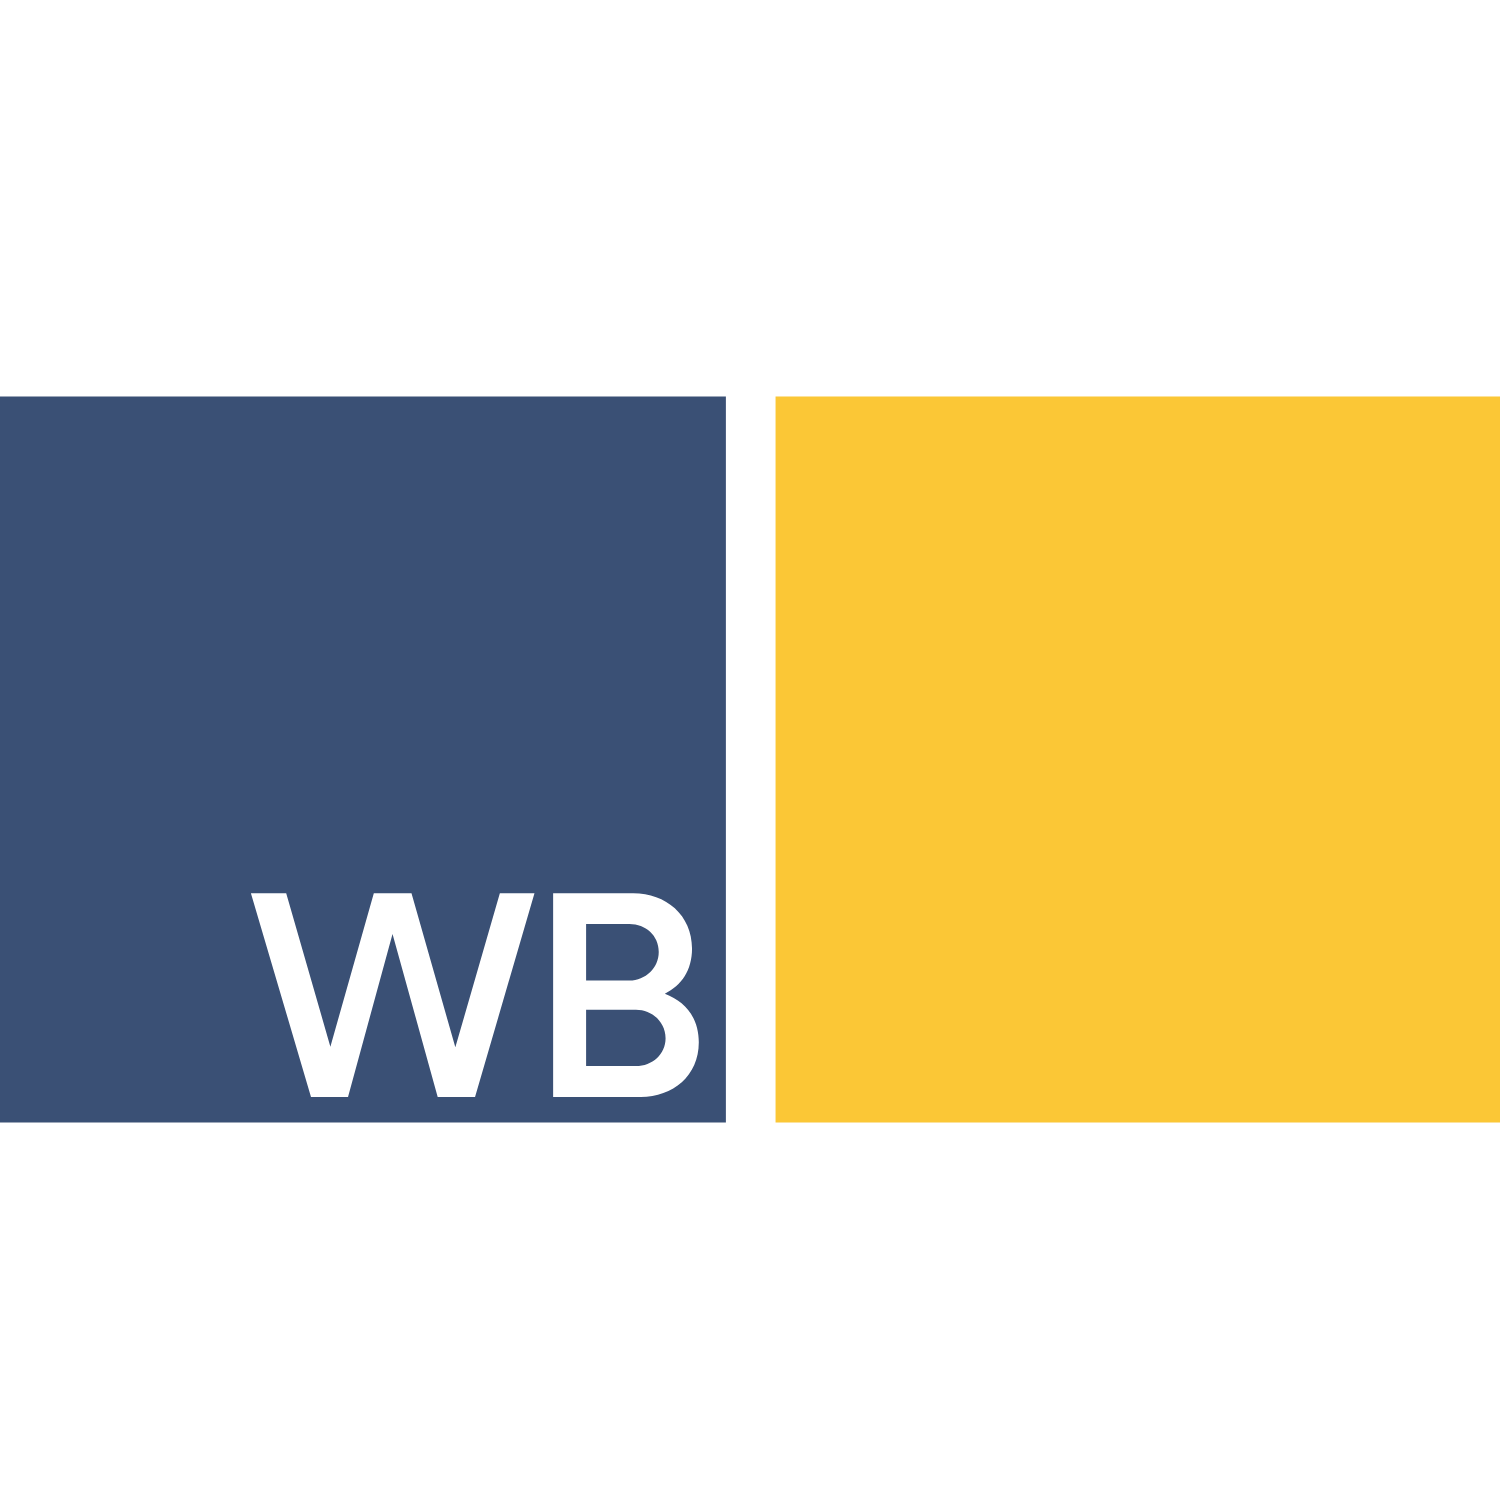 WB Risk Prevention Systems